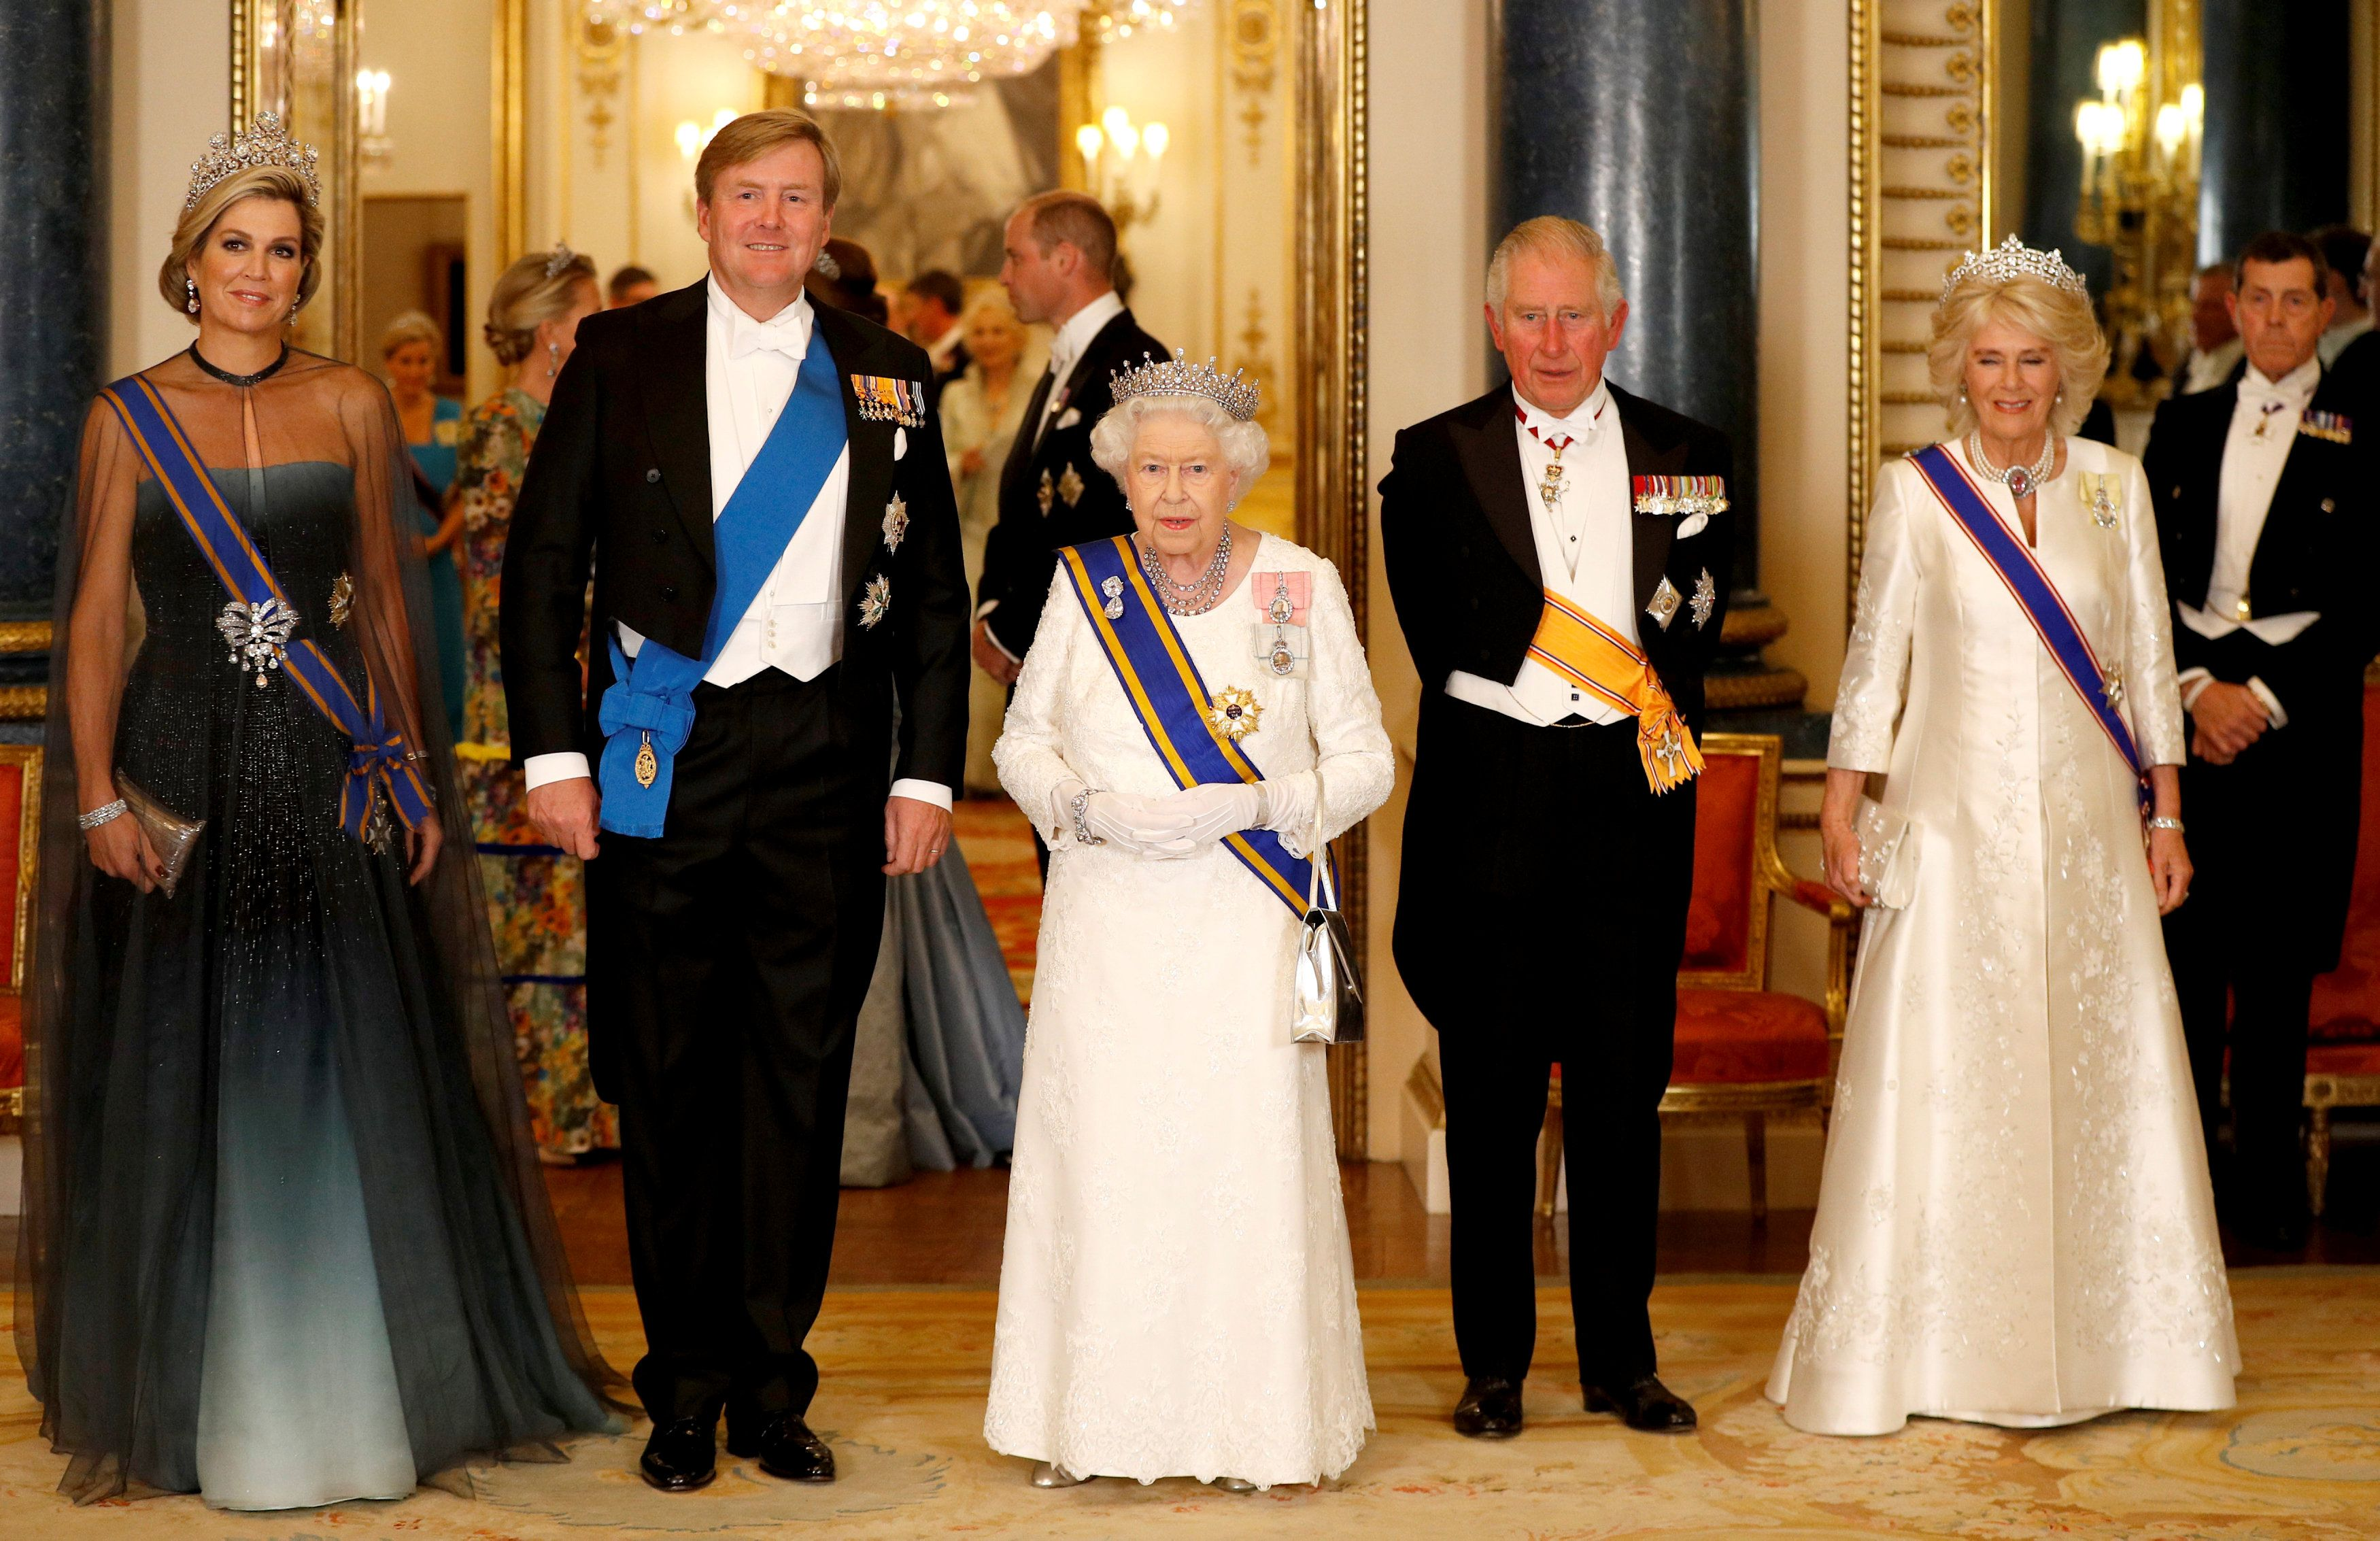 BRITAIN-NETHERLANDS-ROYALS